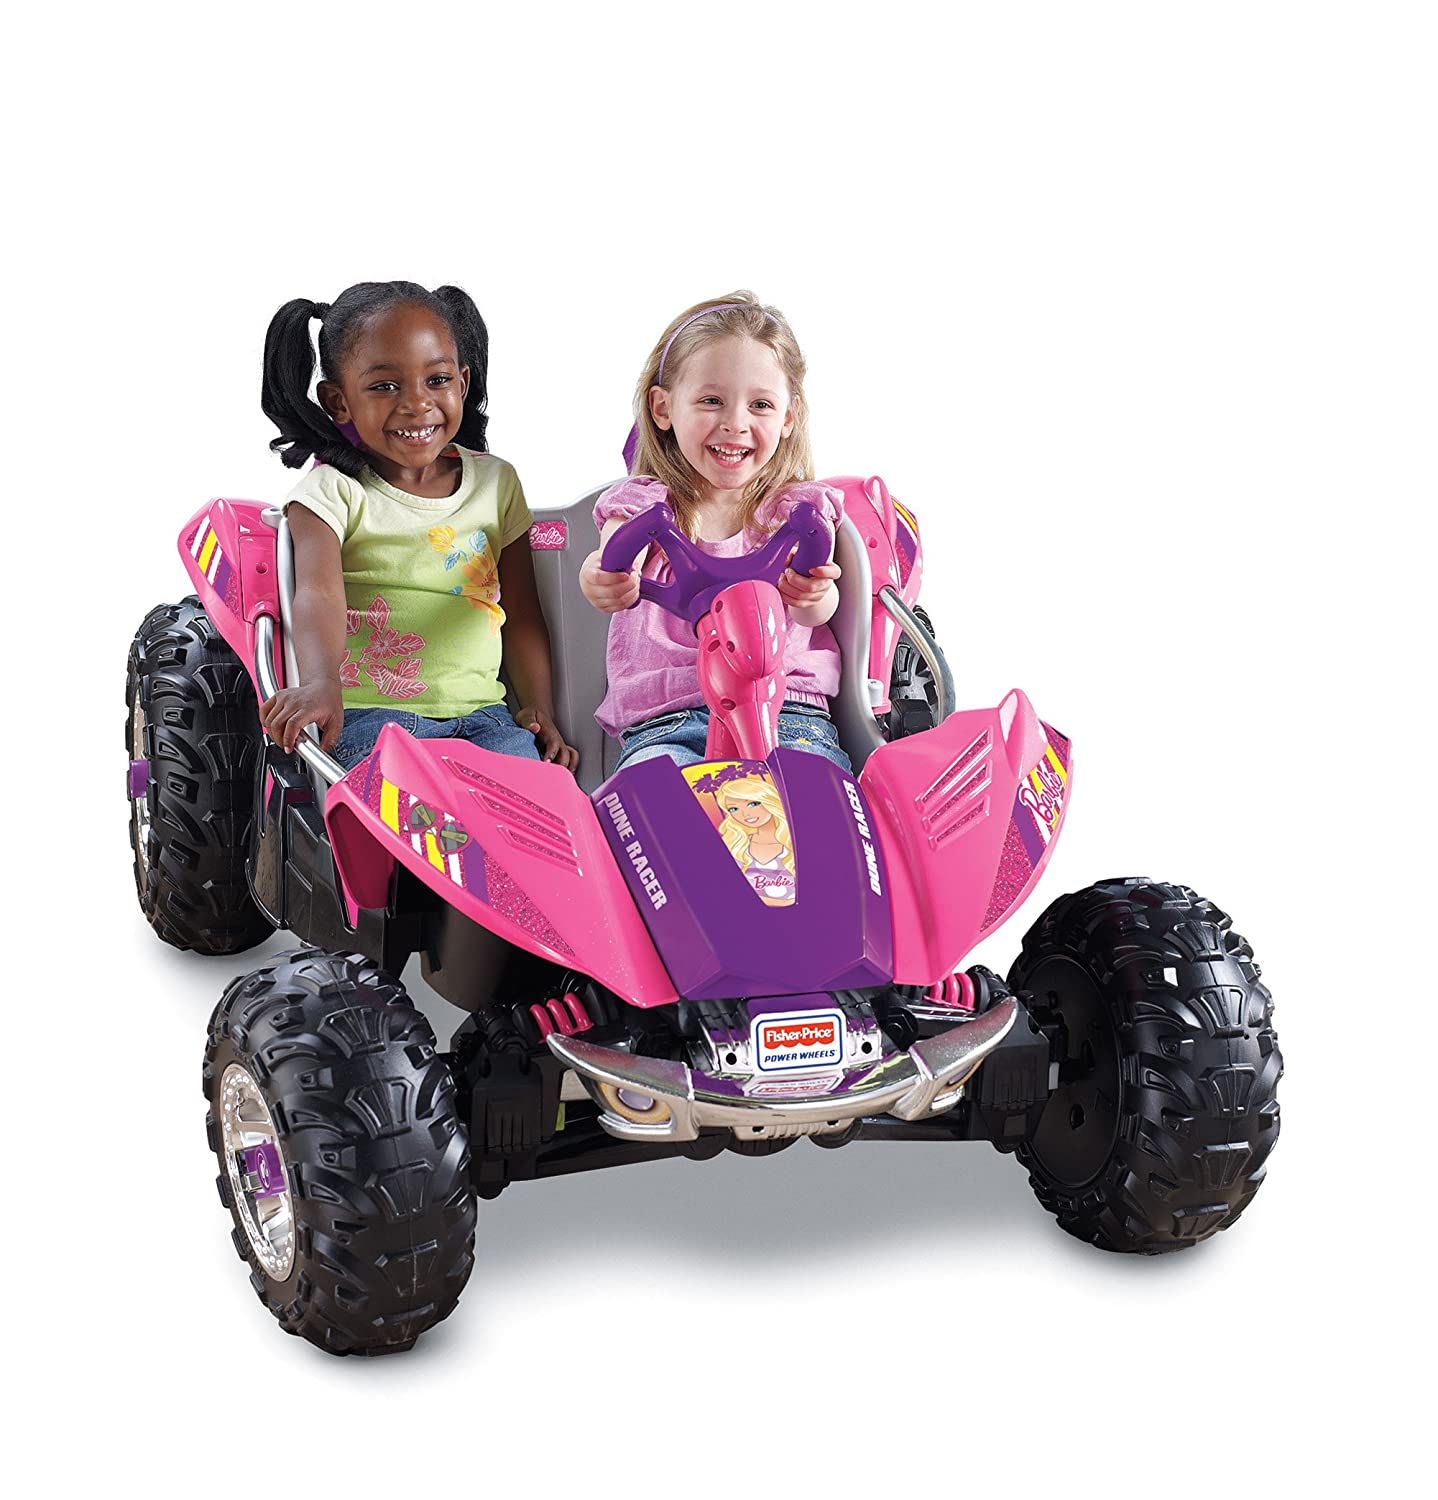 Power Wheels Dune Racer theodore gilliland fisher investments on utilities